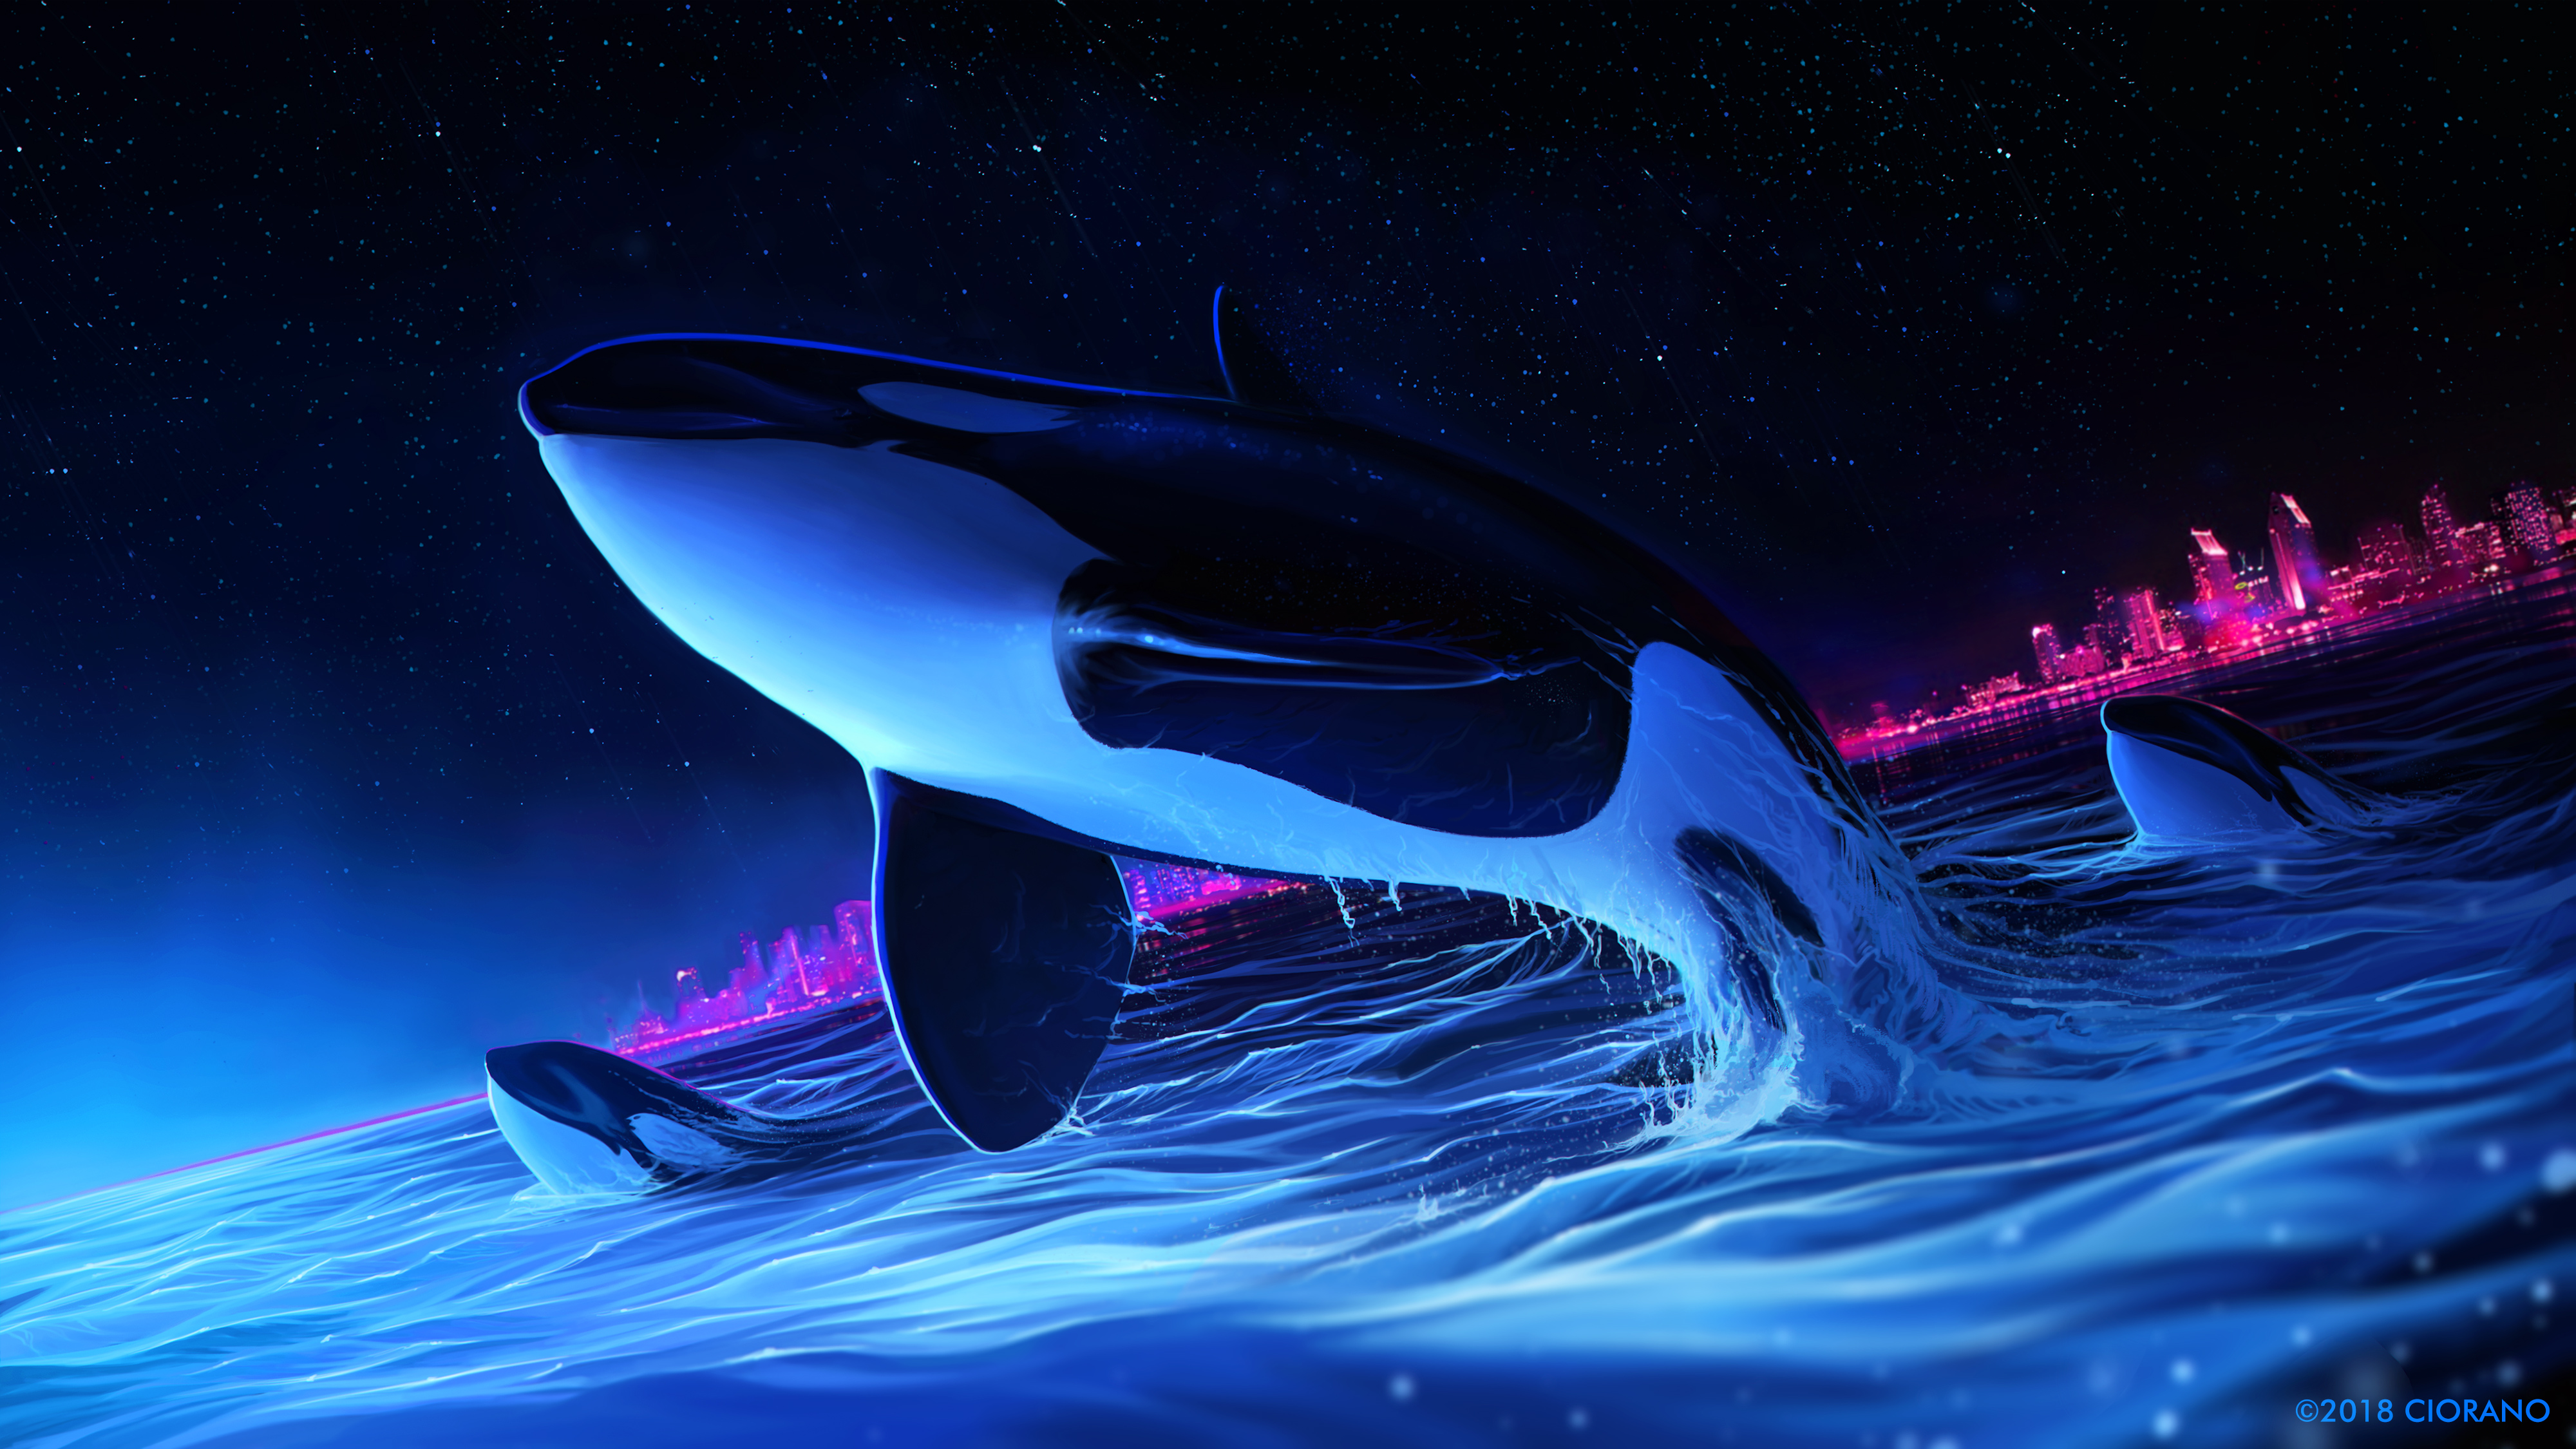 Whale Wallpaper Hd Posted By Ethan Thompson